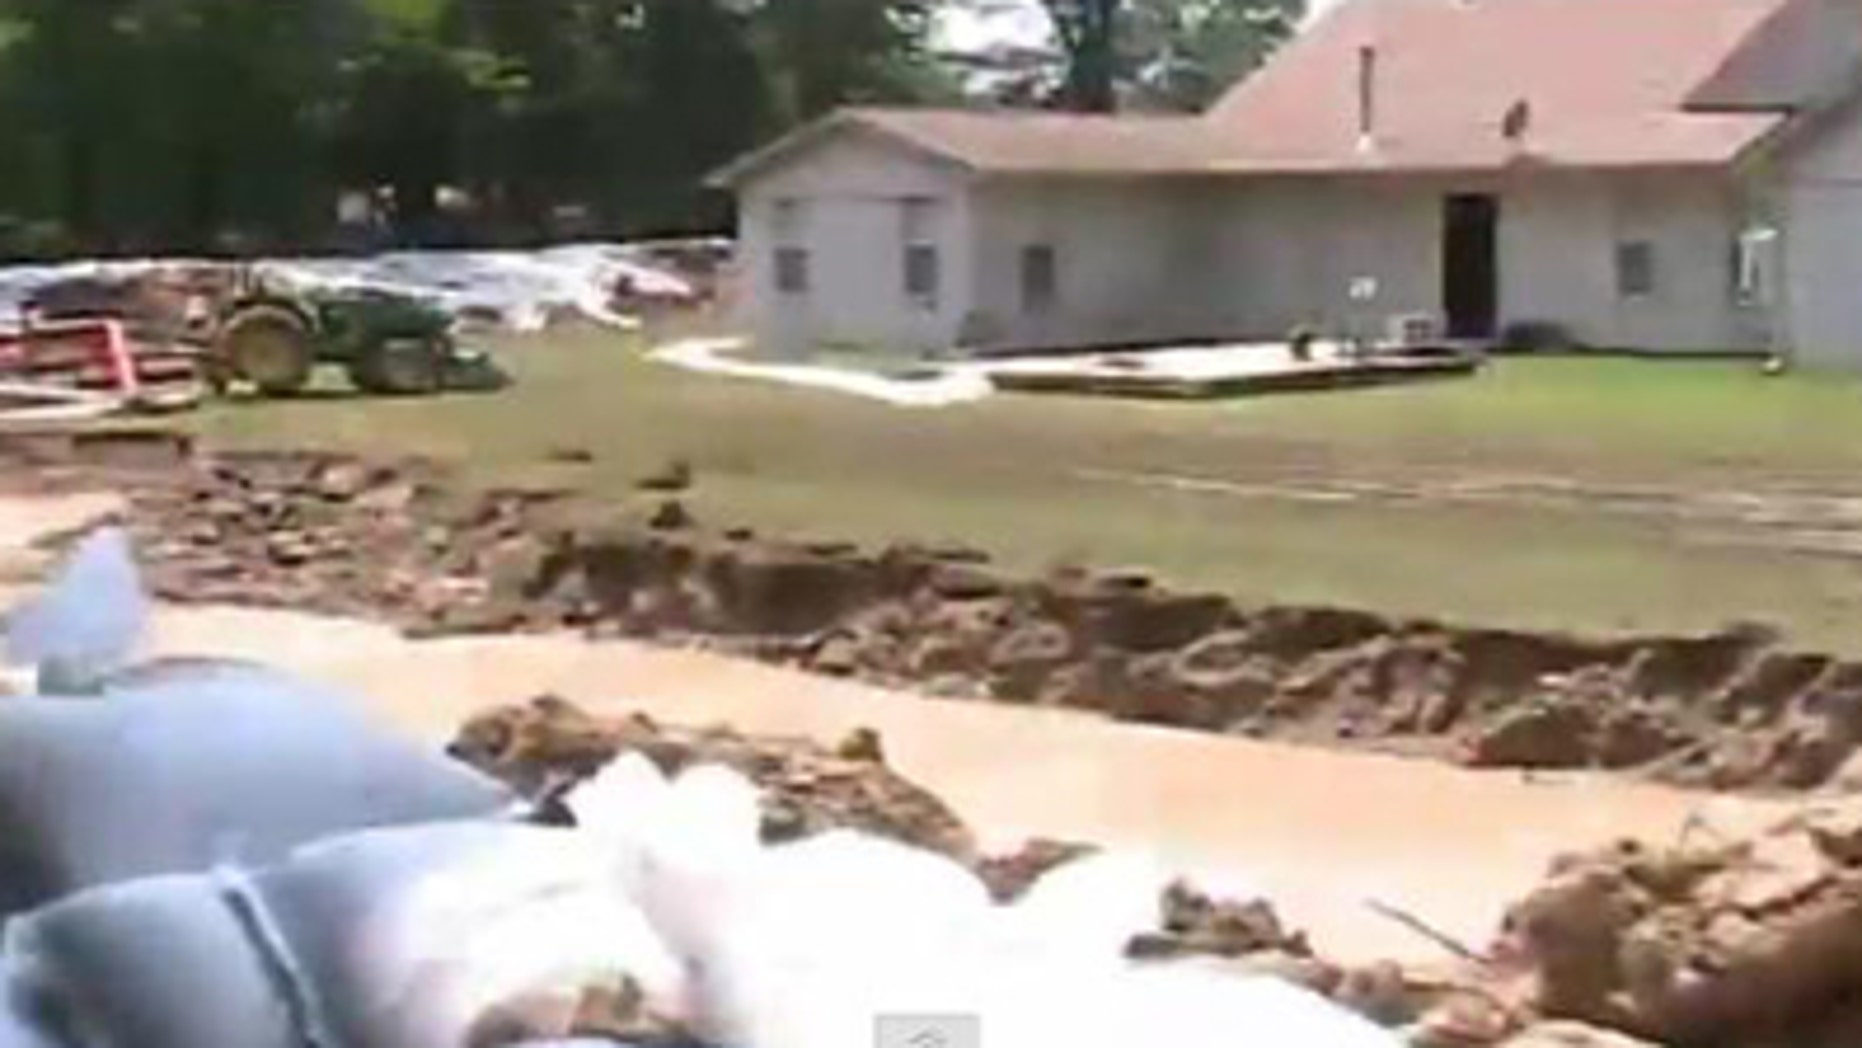 Russell Petty of Devalls Bluff, Ark., has built a moat and levee to protect his property from rising floodwaters.